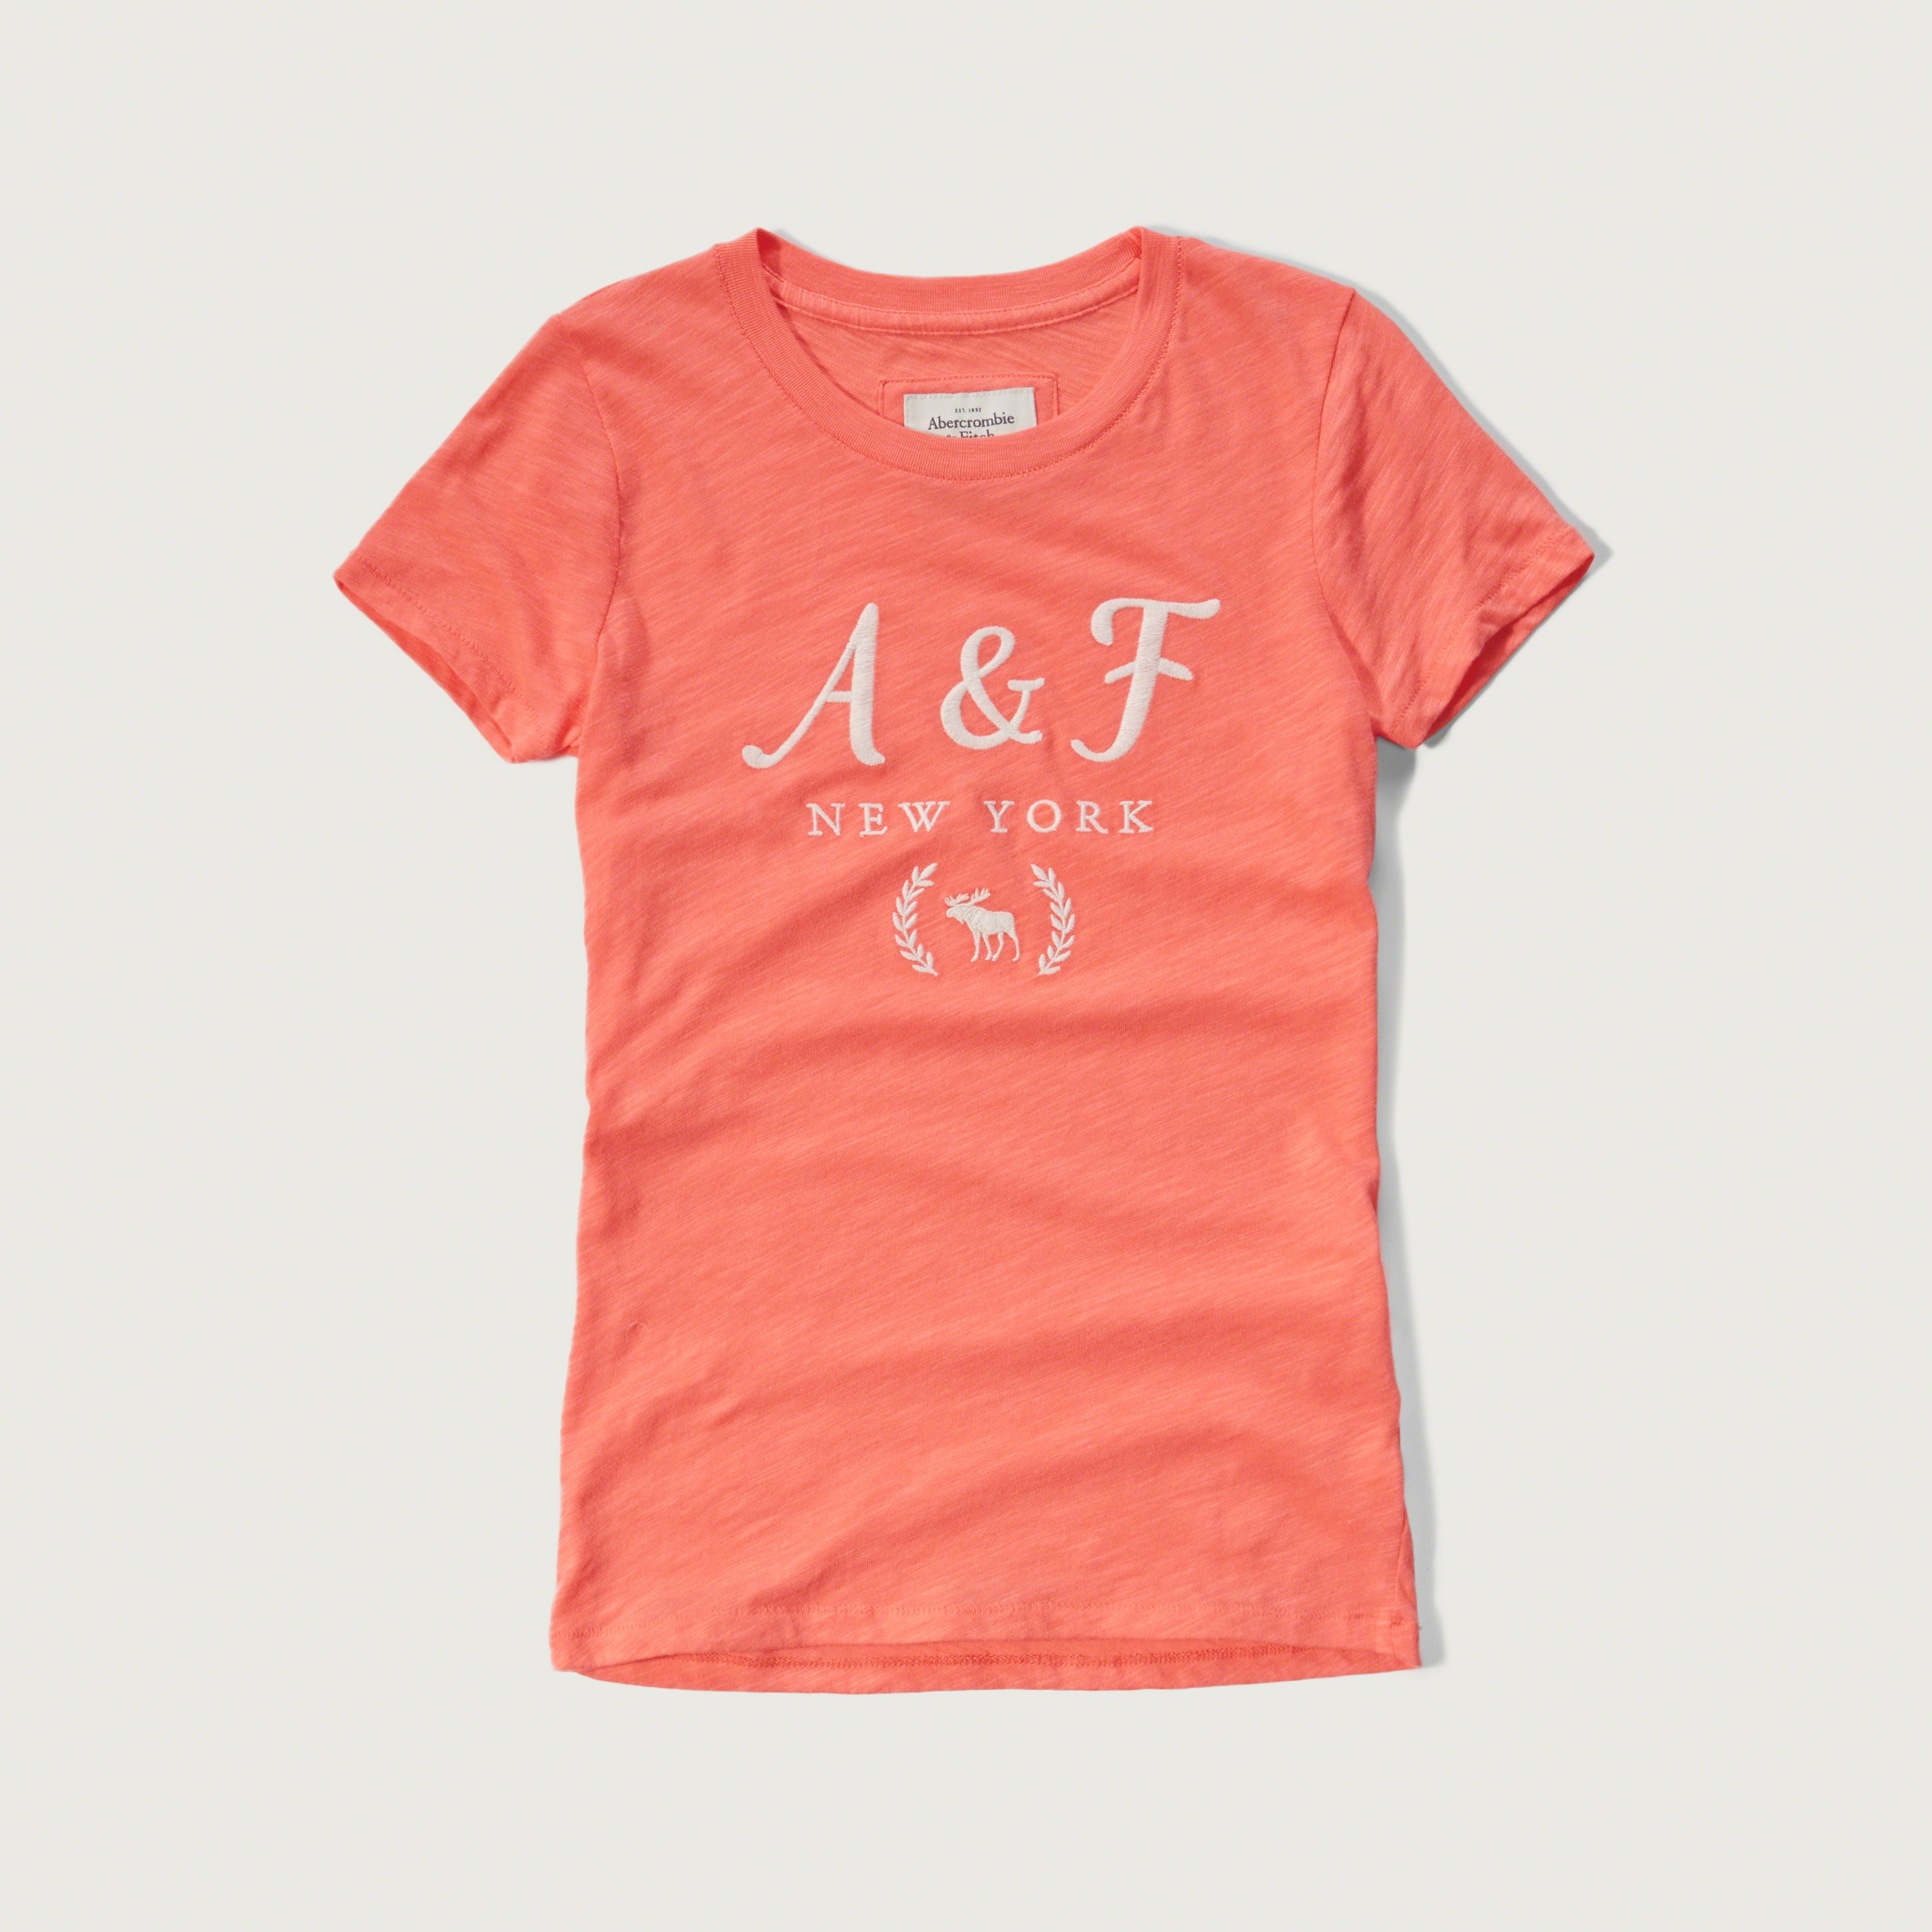 Lyst abercrombie fitch embroidered logo graphic tee for Abercrombie and fitch tee shirts